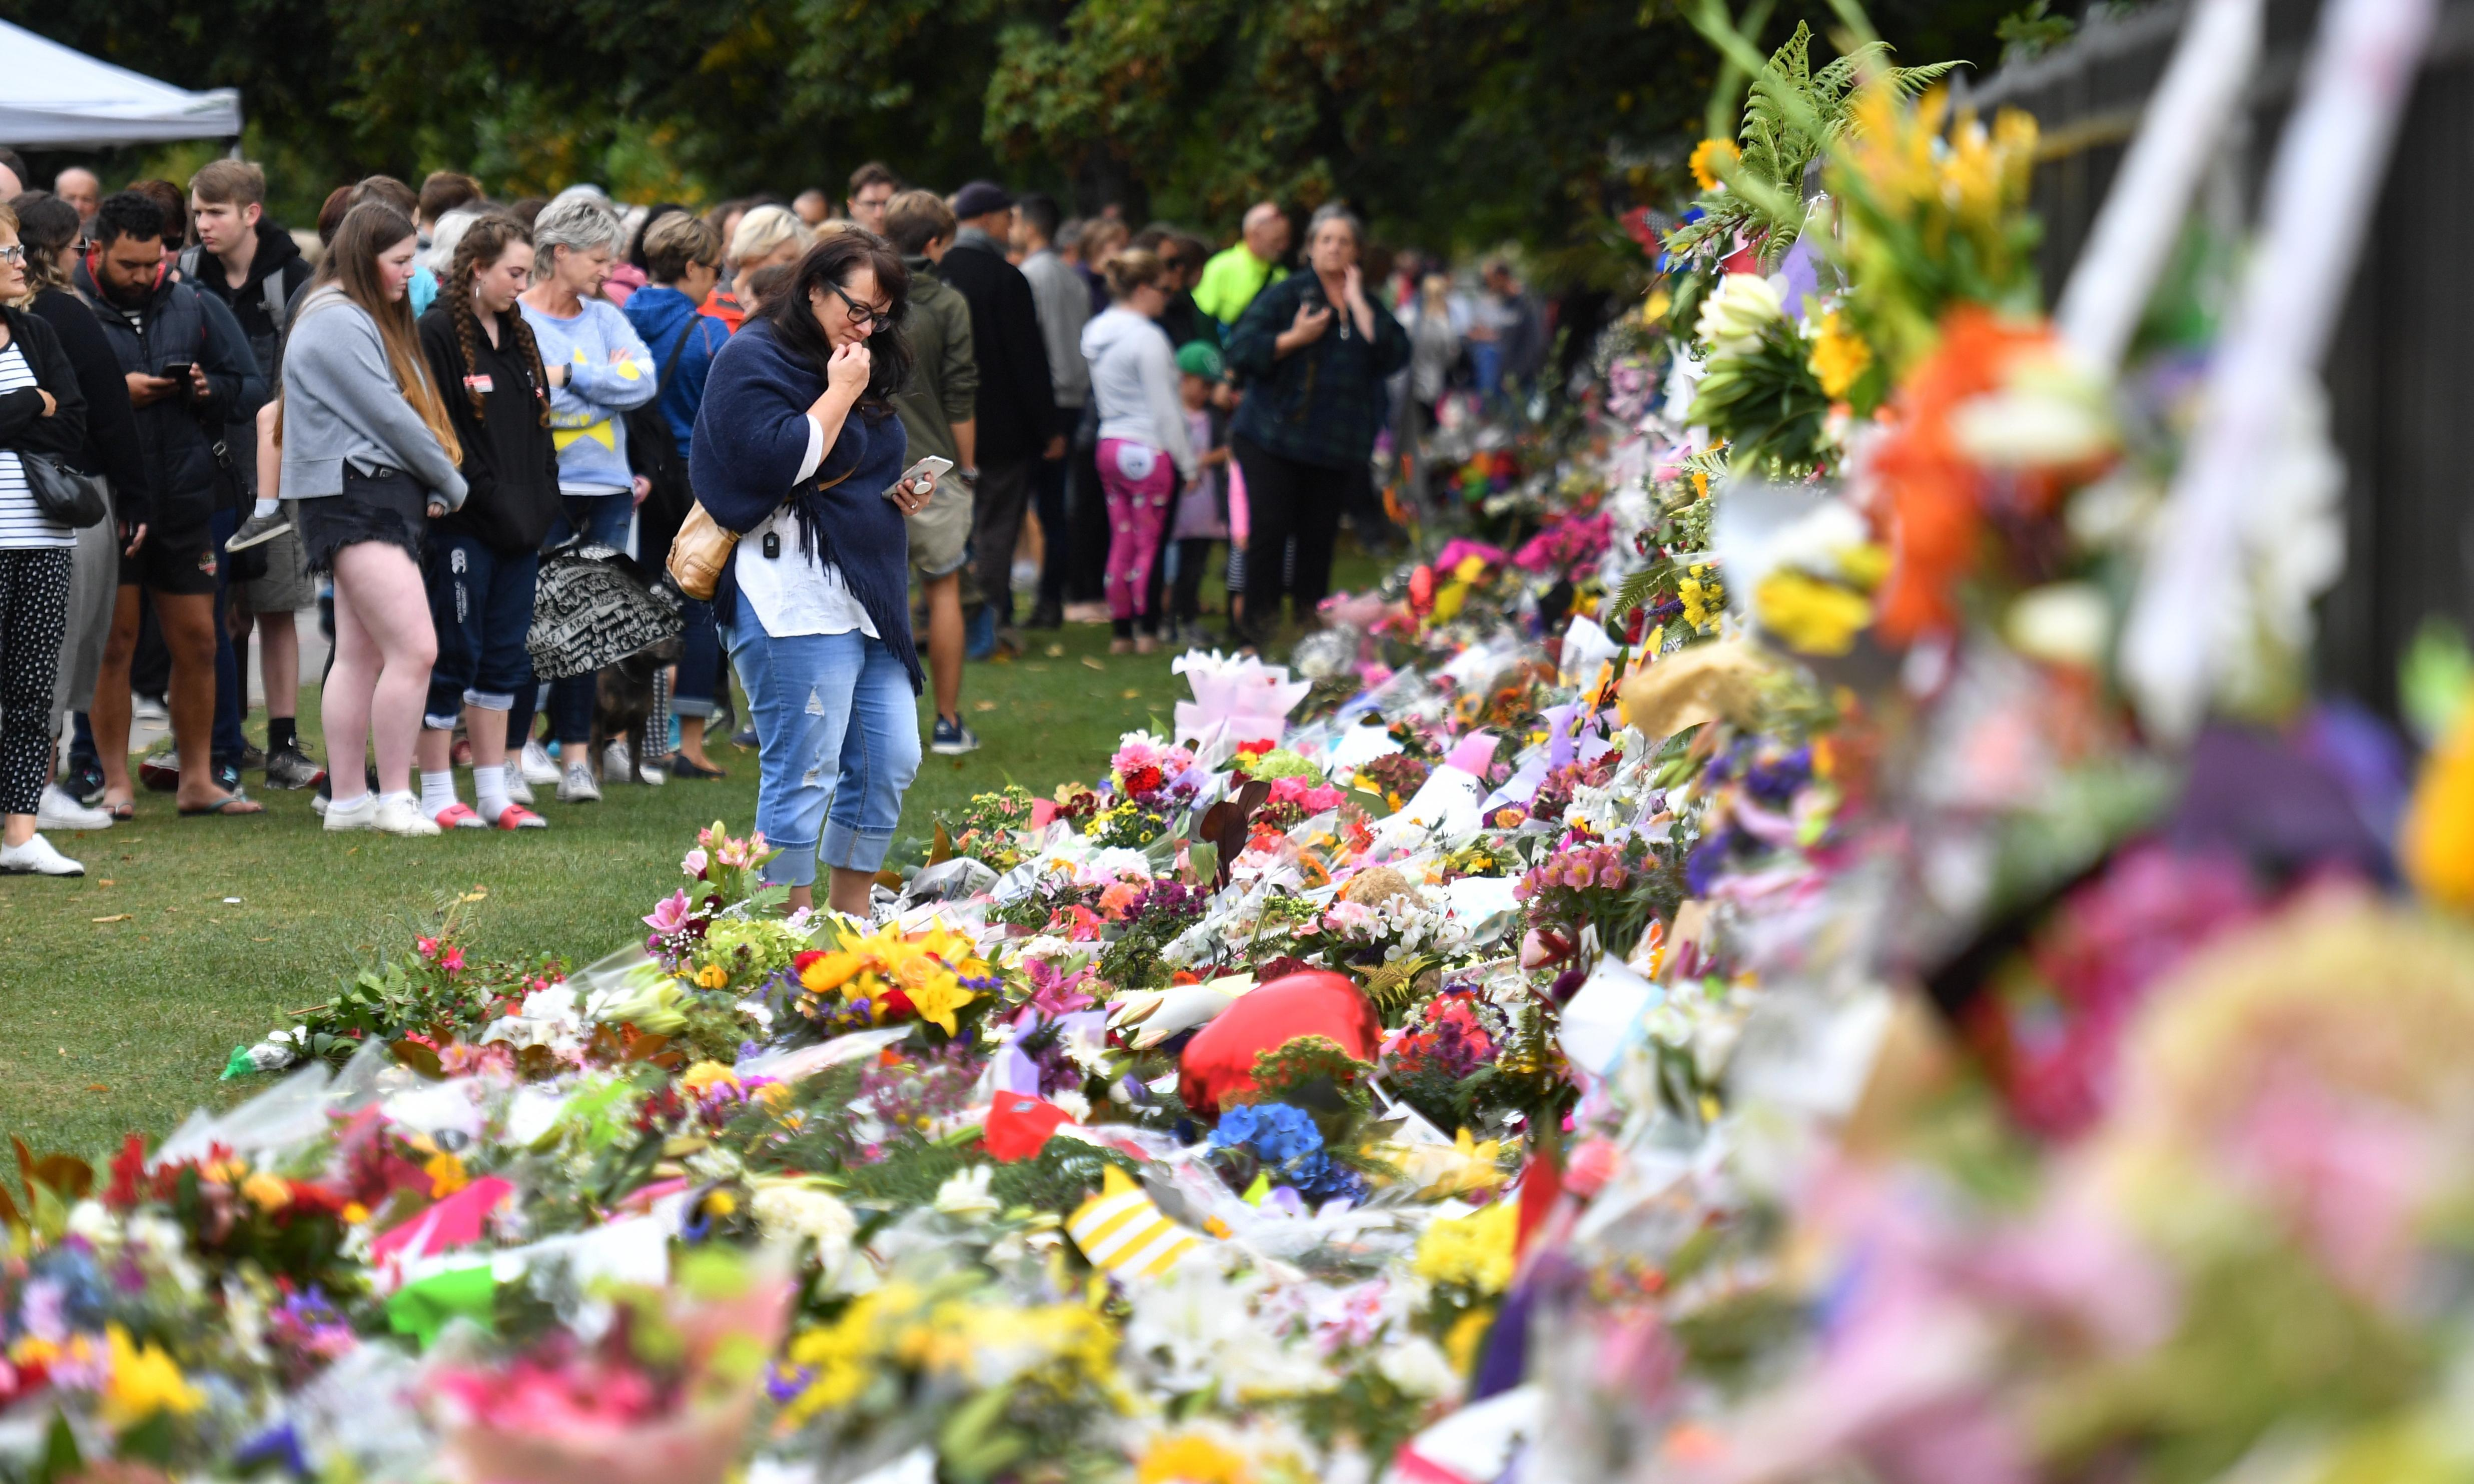 Christchurch man jailed for sharing video footage of massacre